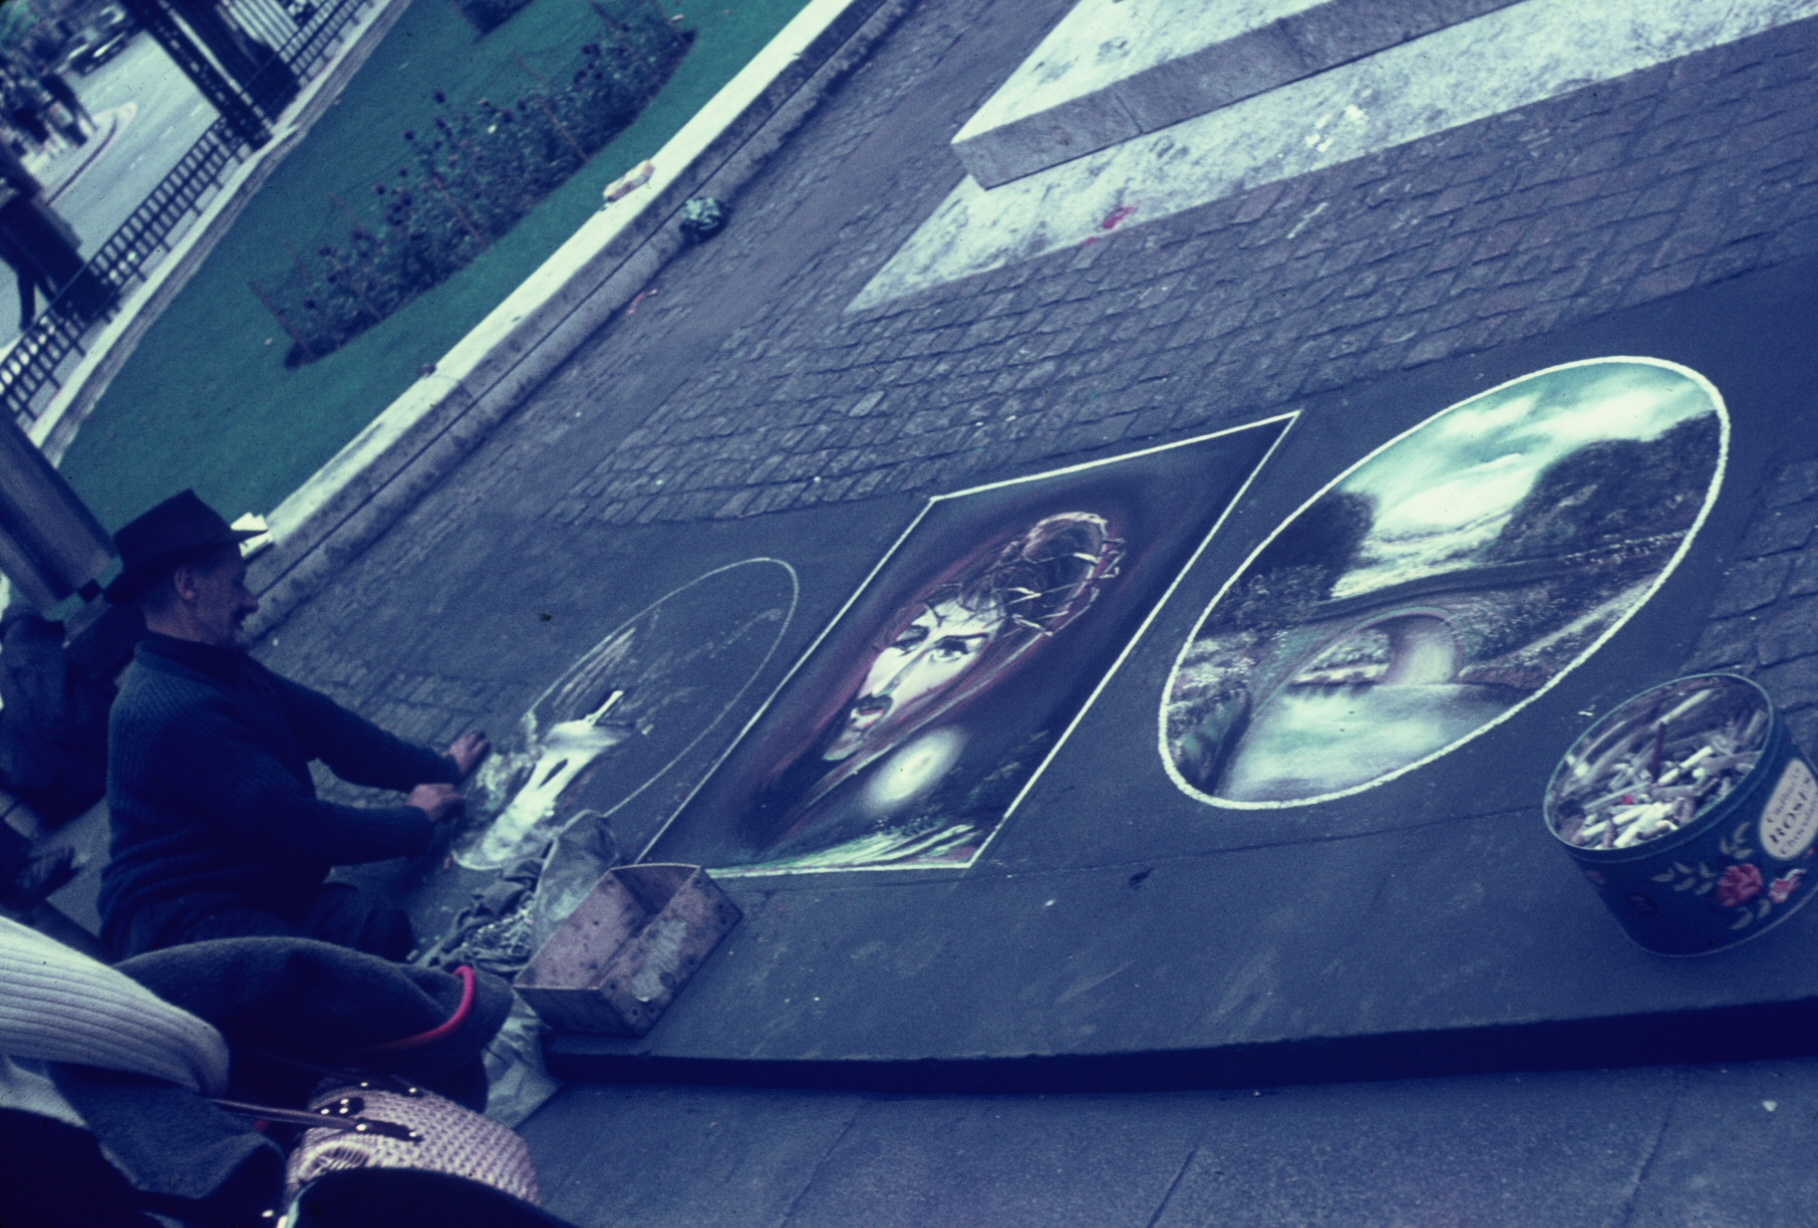 Artist who does chalk pictures on London sidewalks